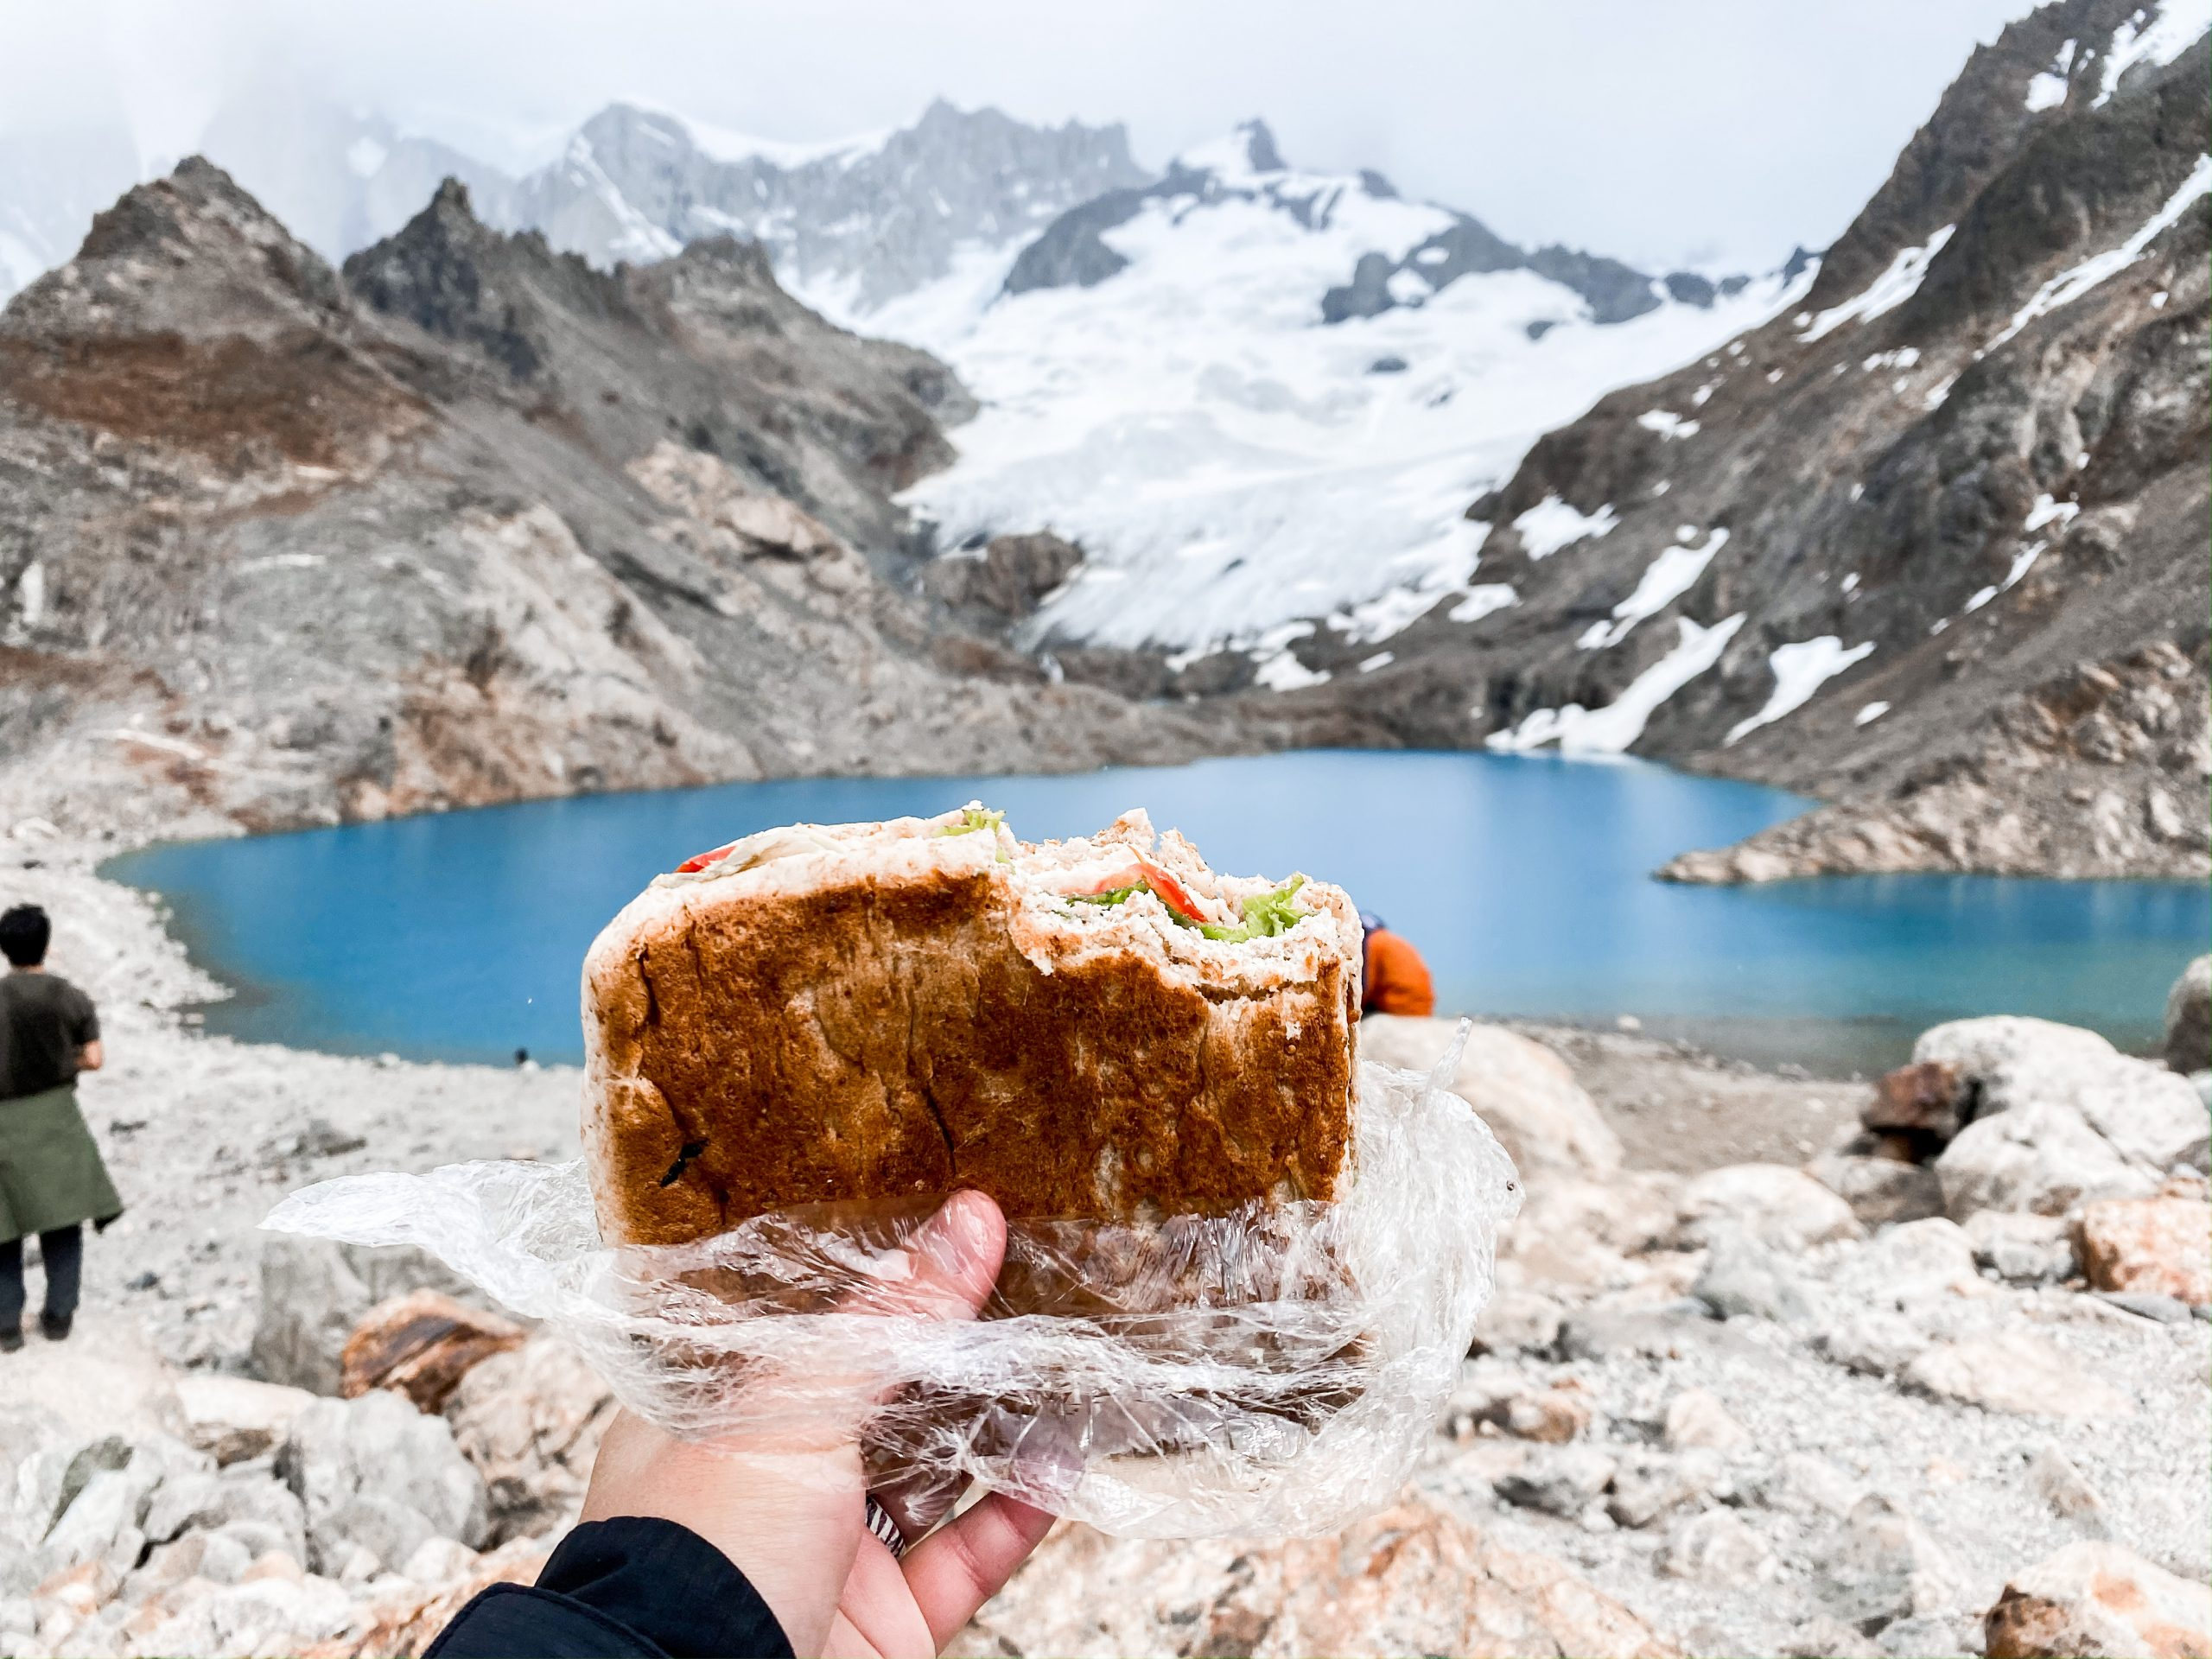 Sandwich at Laguna de los Tres